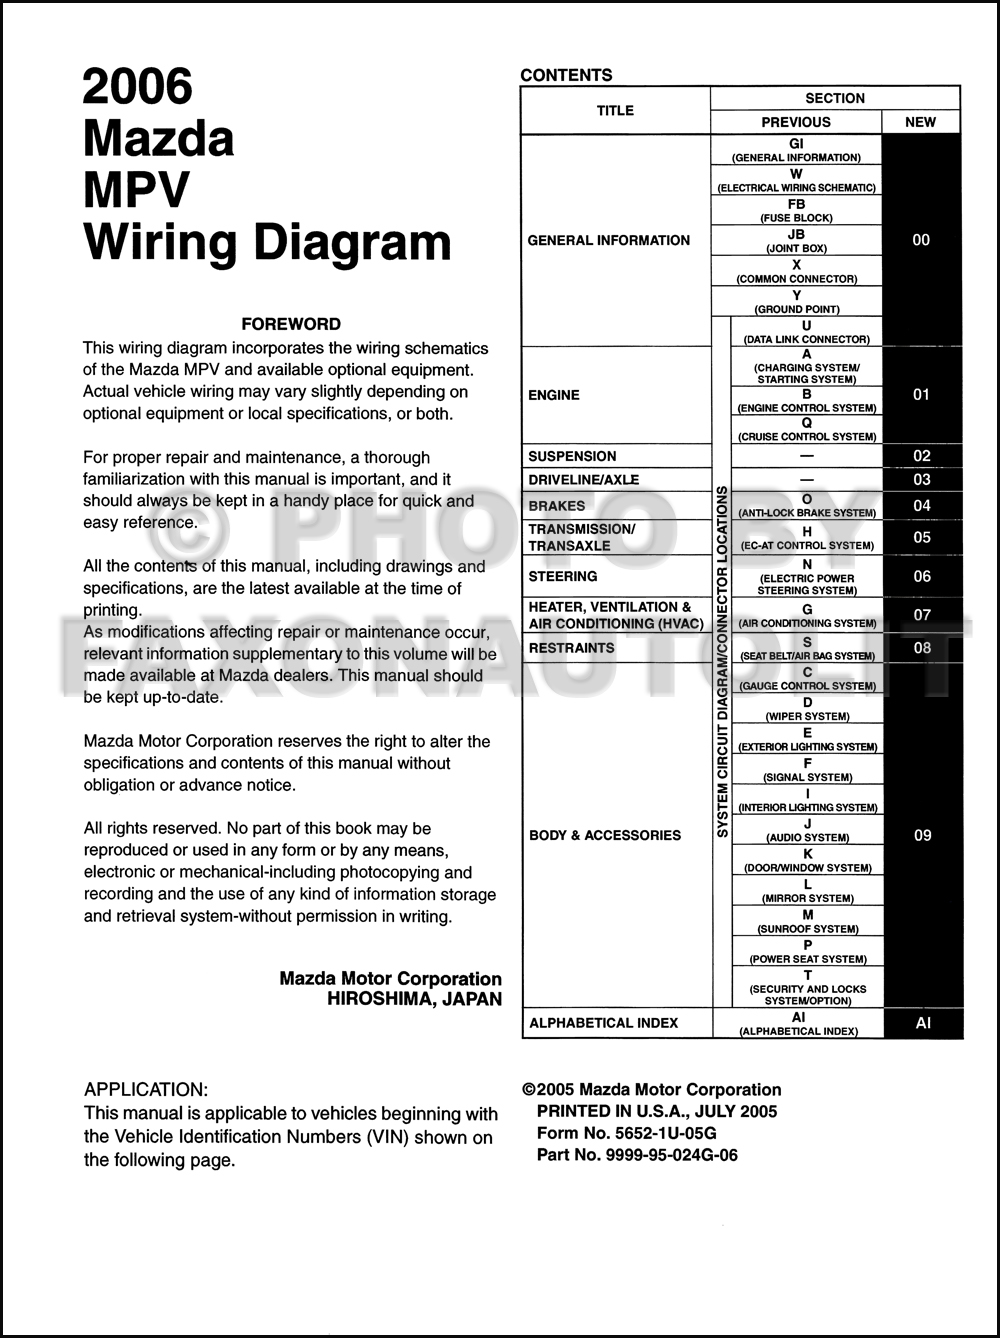 wiring diagram mazda 3 2004 zf 7316  wiring diagrams for 2006 mazda 3  zf 7316  wiring diagrams for 2006 mazda 3